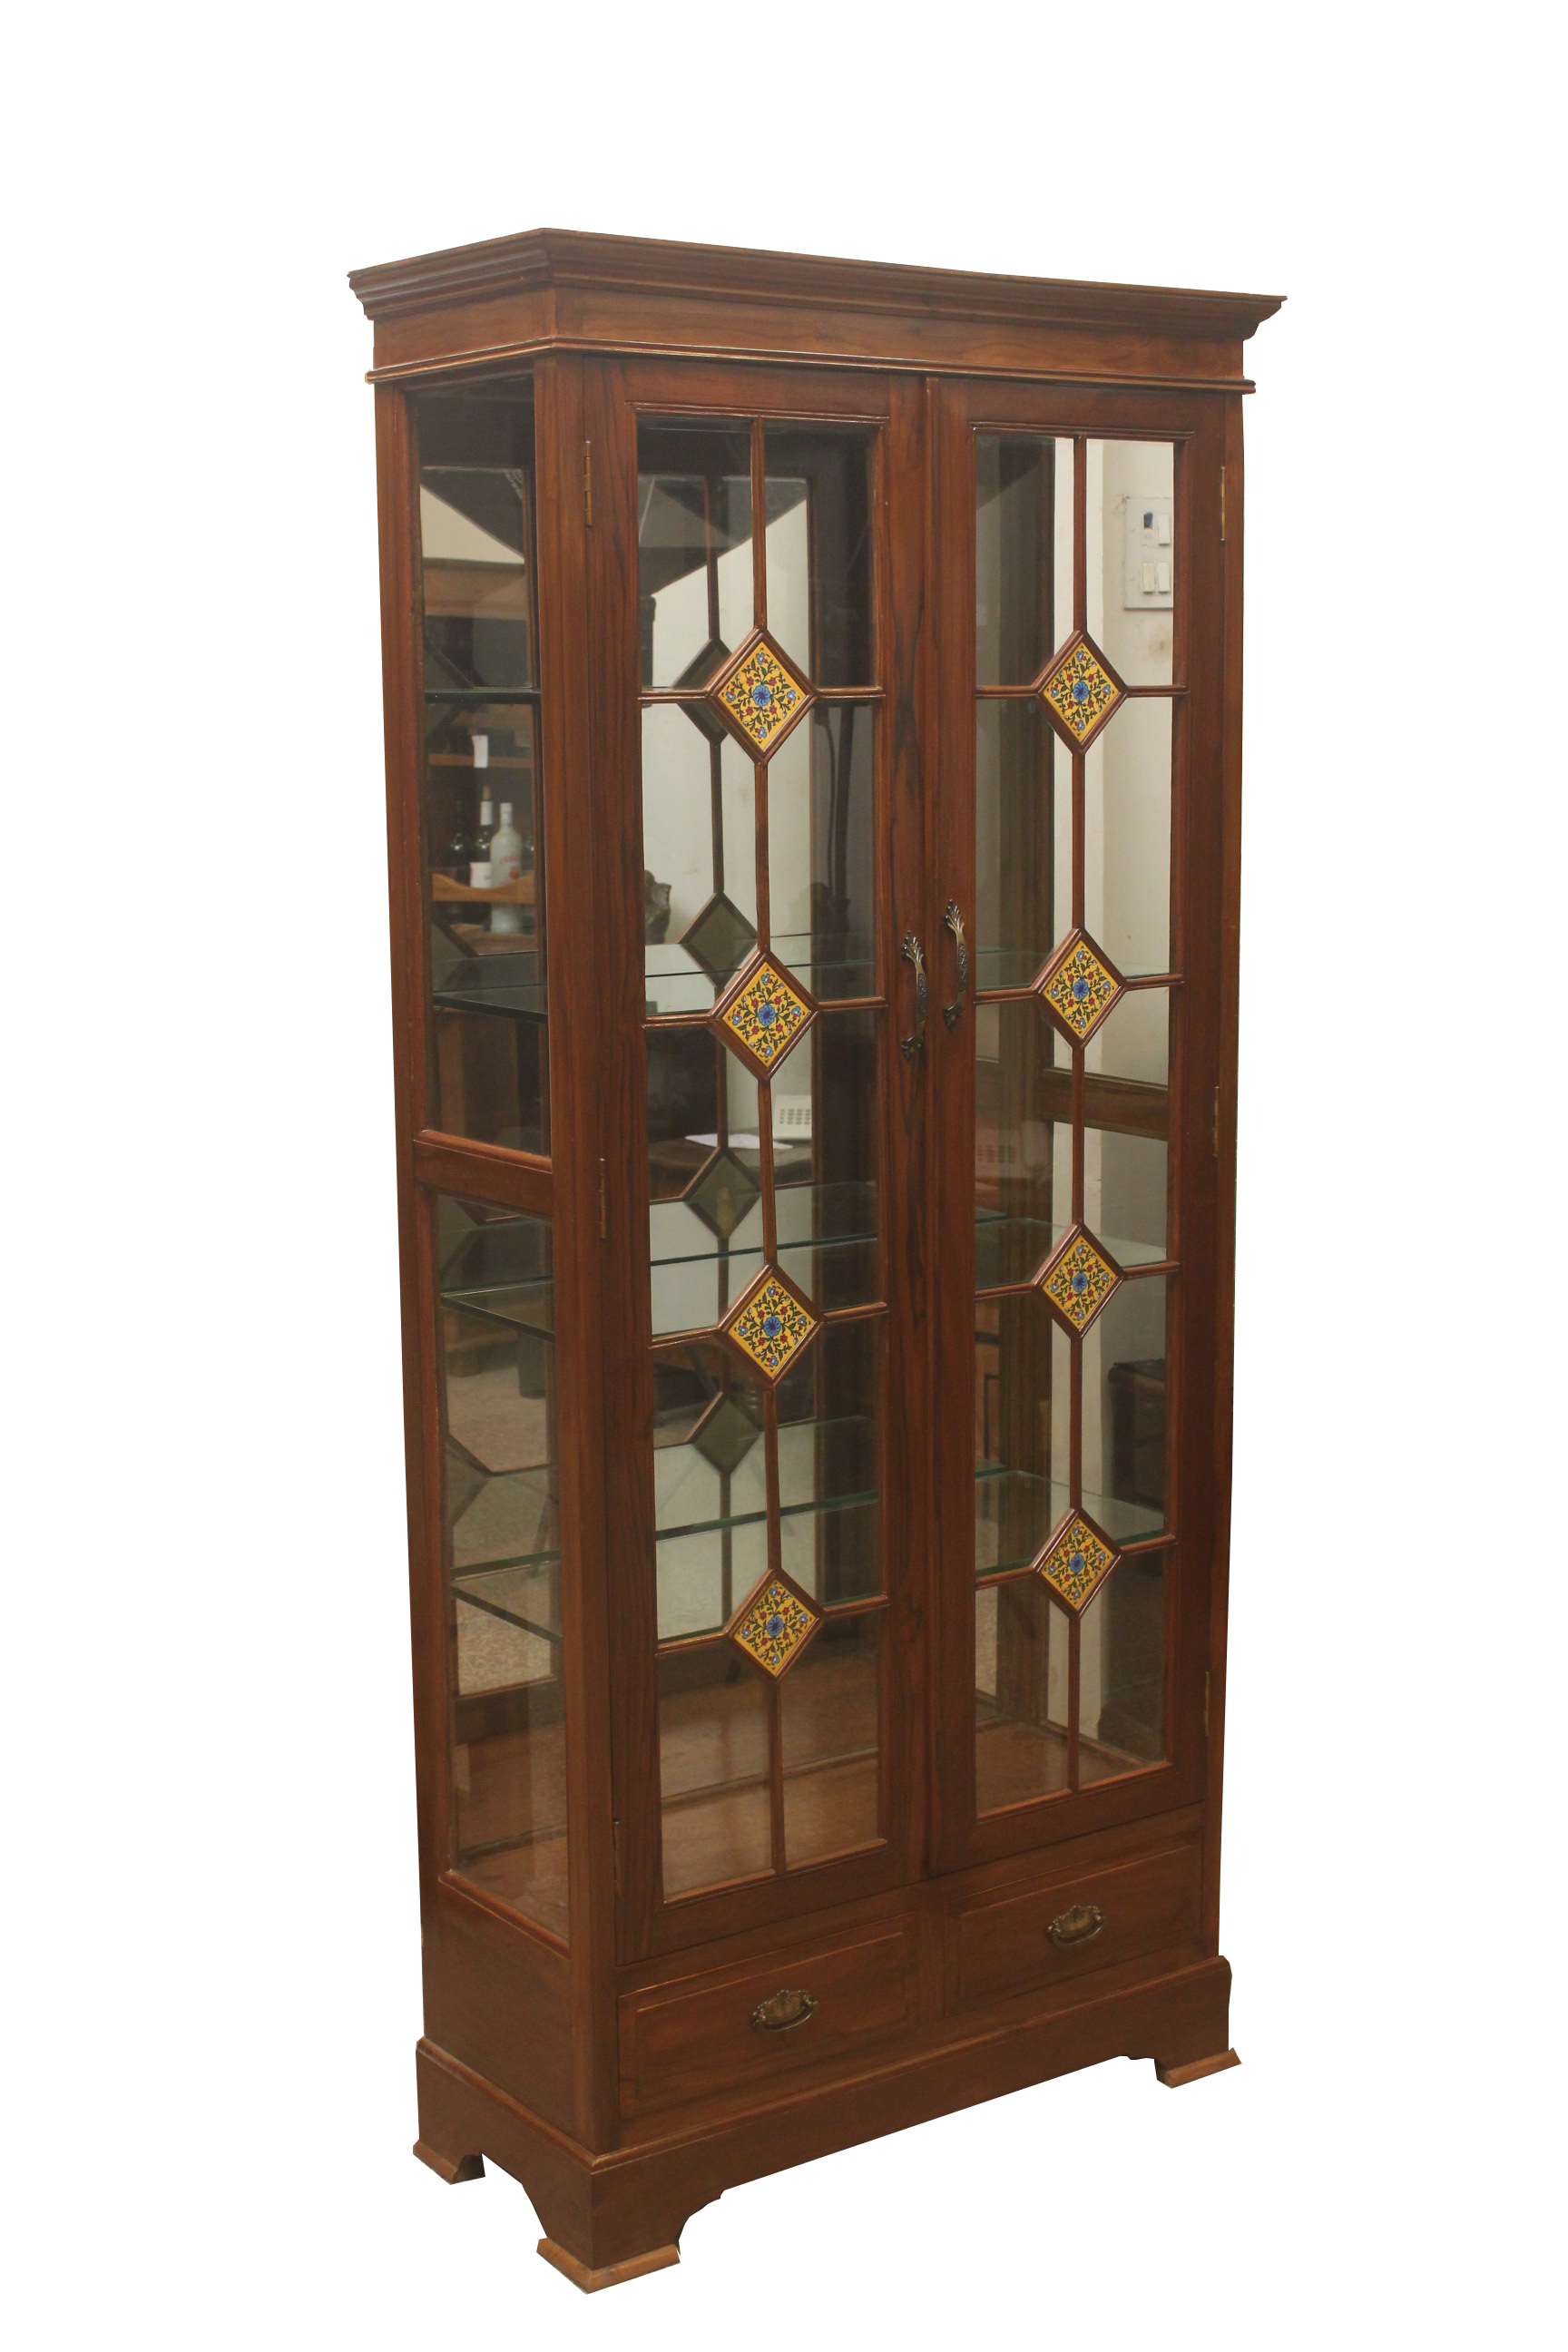 Dc90 Wooden Showcase Display Cabinet With Decorated Tiles Details